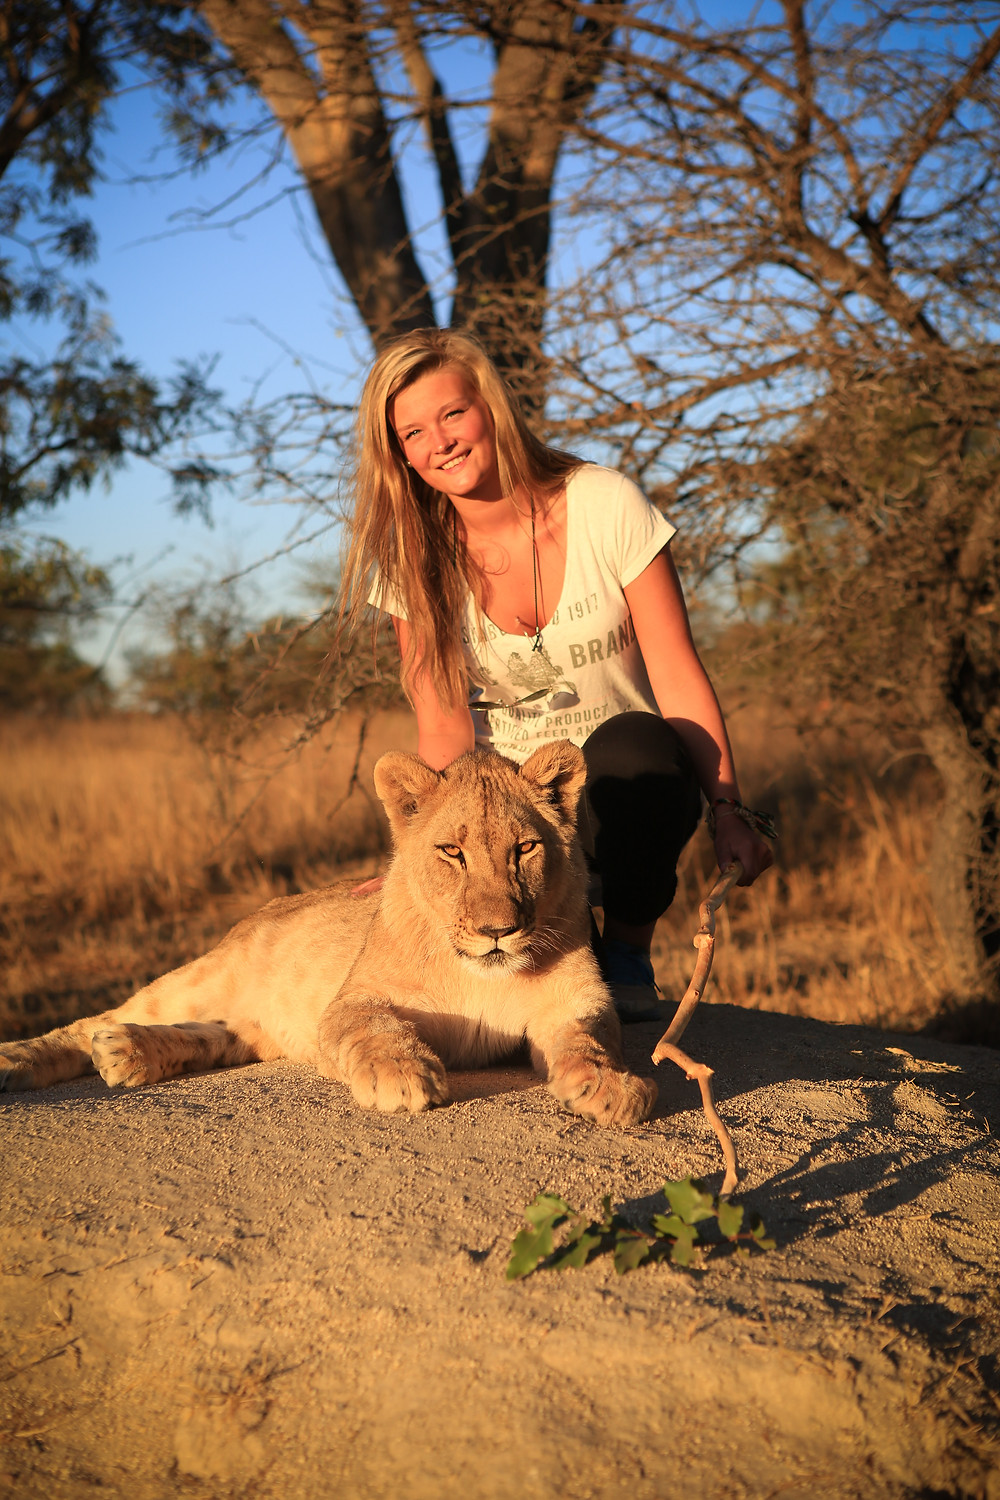 The stuff dreams are made of? Only if you do not make them your reality. Lion Rehabilitation and Release Project